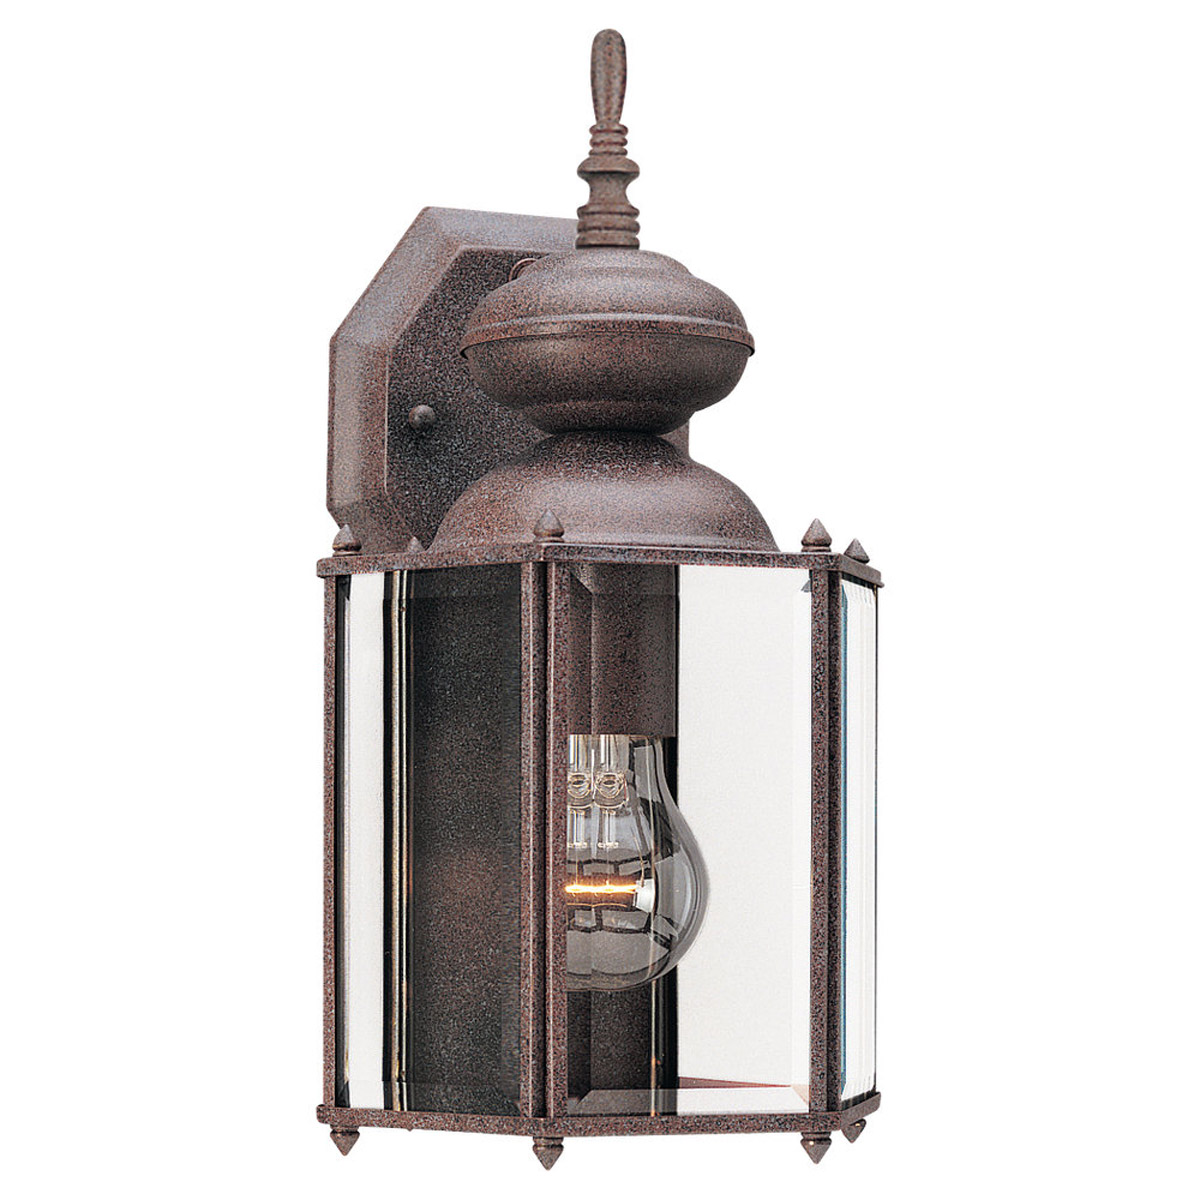 Sea Gull Lighting Classico 1 Light Outdoor Wall Lantern in Sienna 8509-26 photo